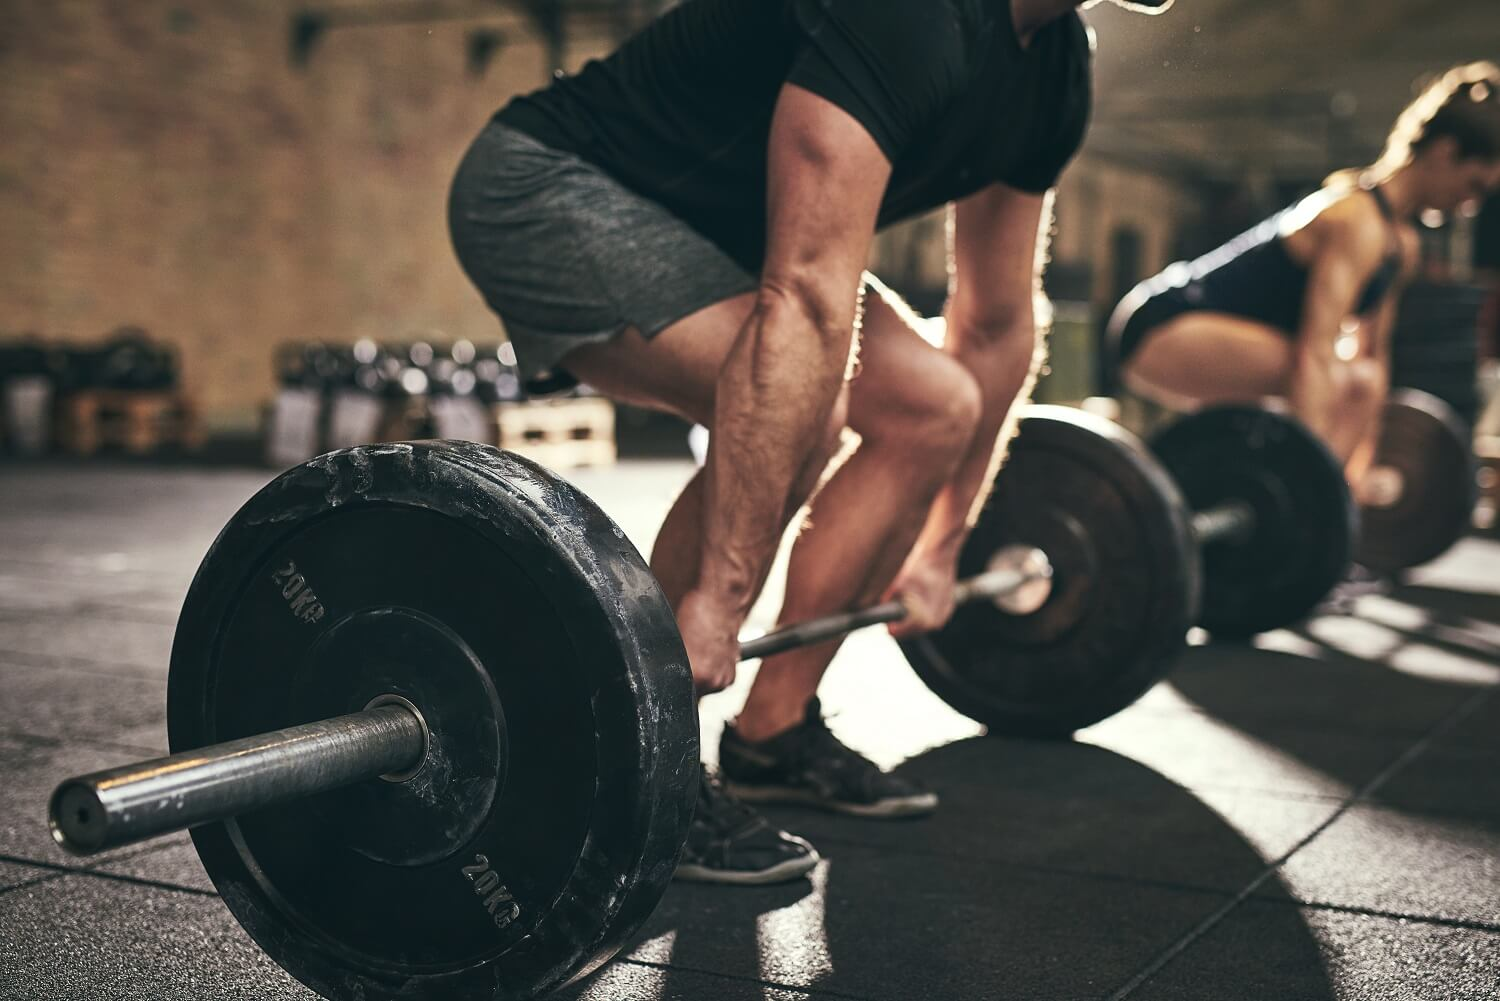 Lifting weights can reduce symptoms of depression